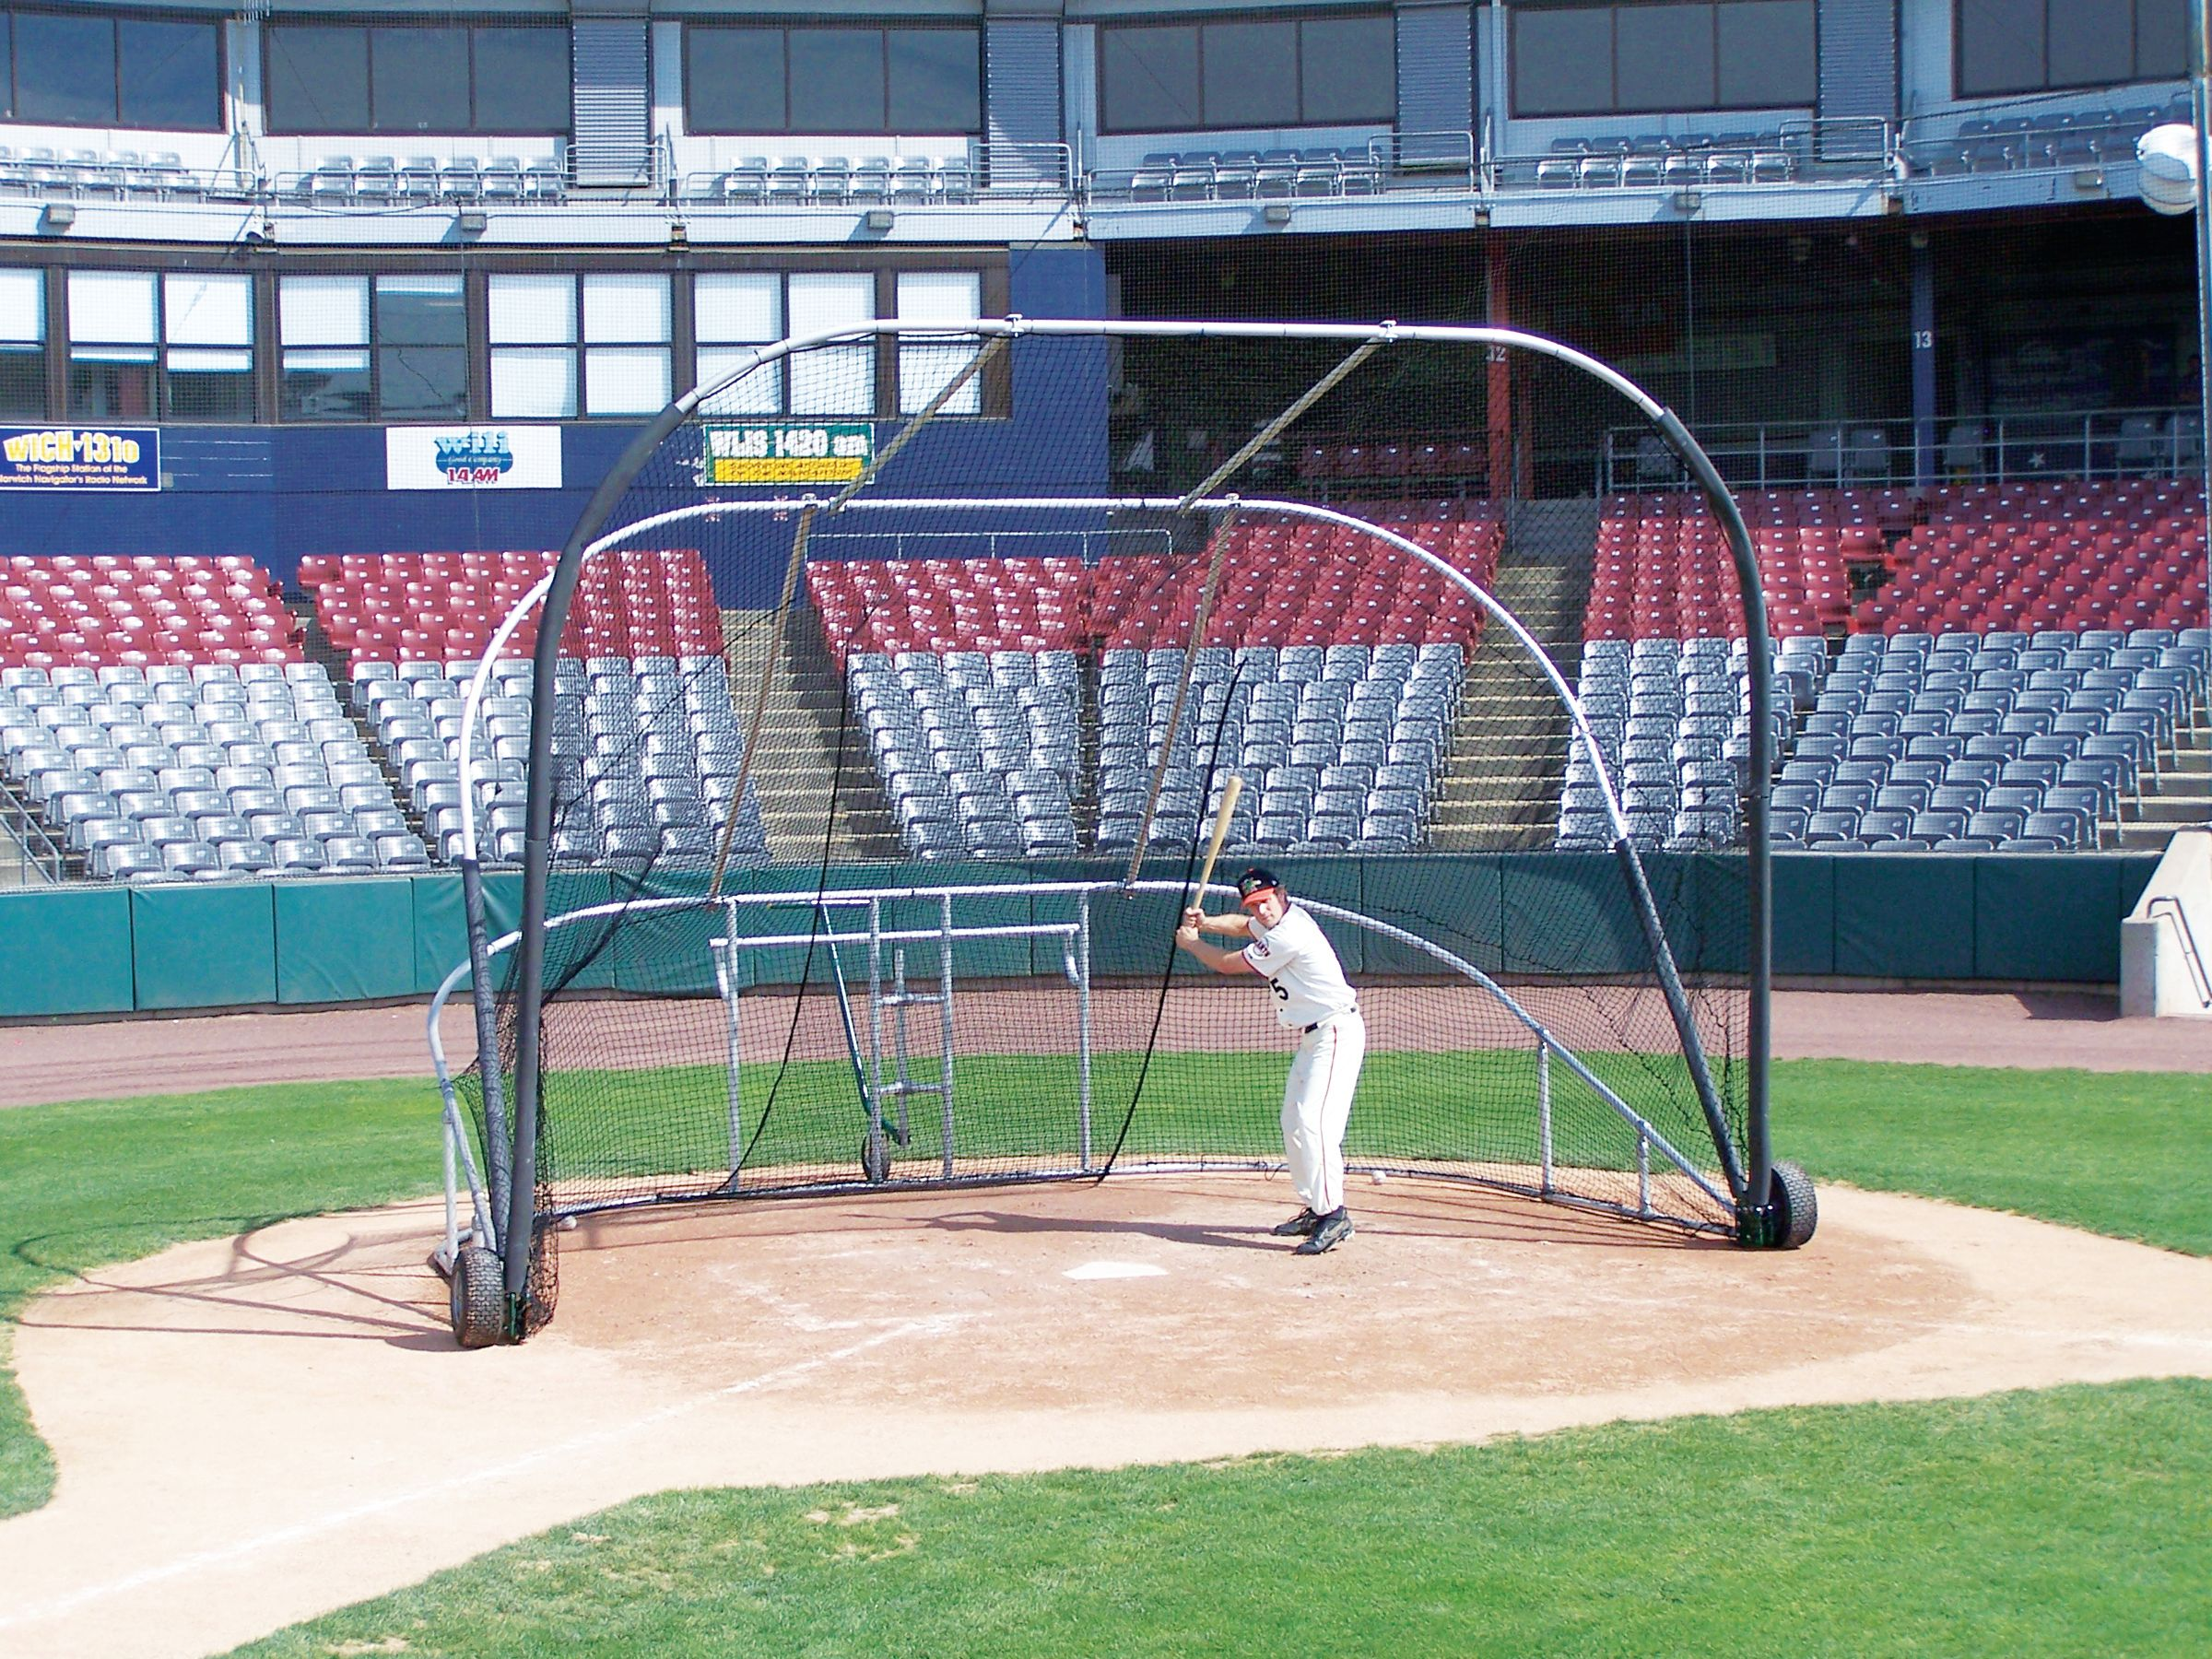 JayPro little slam batting cage